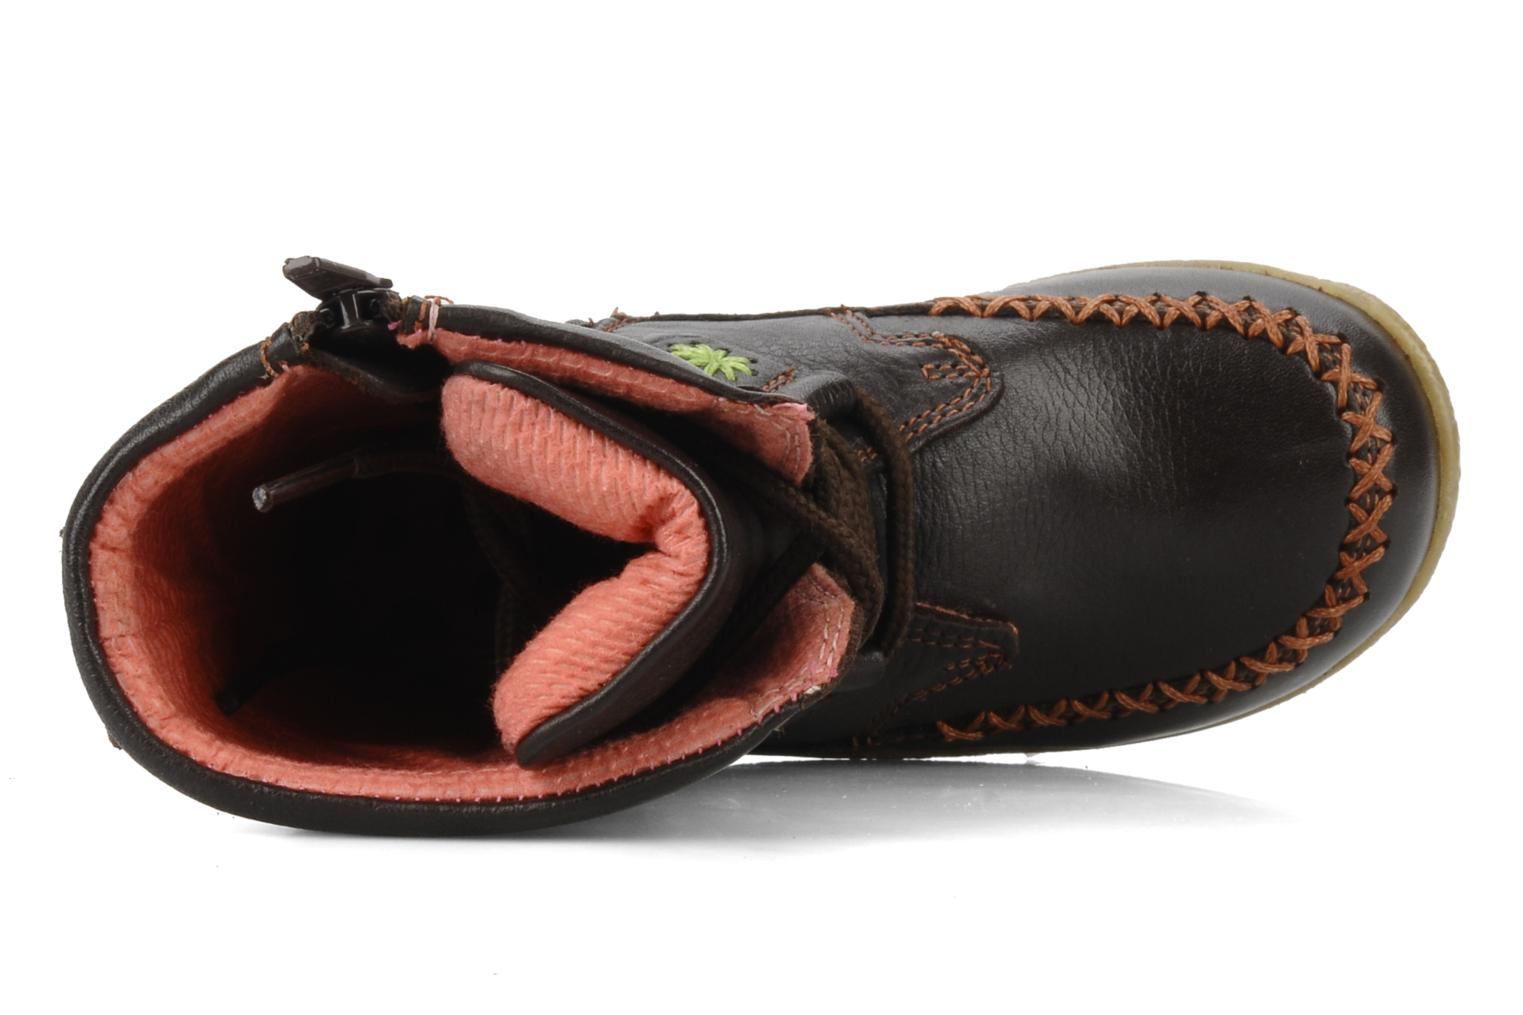 Spice Brown leather